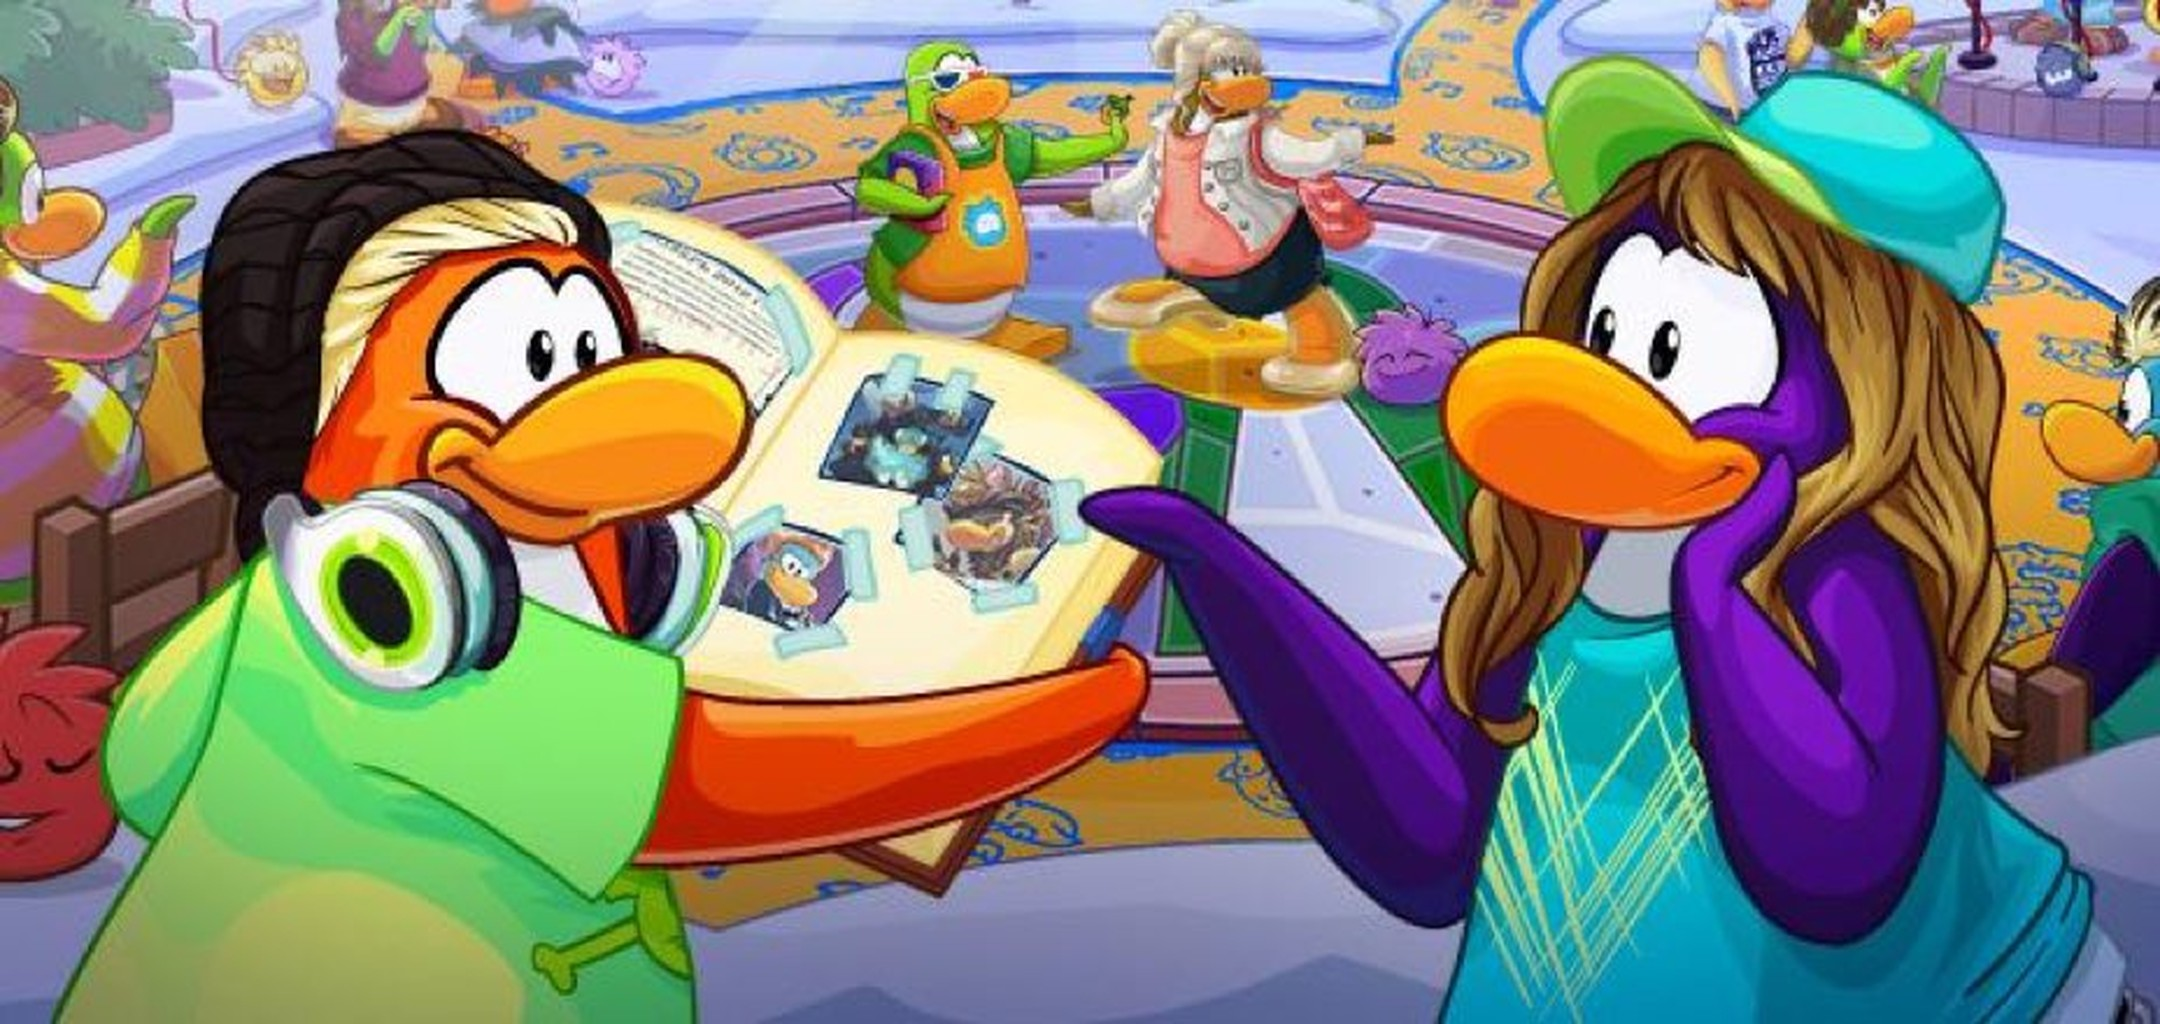 H Club Penguin Club Penguin Is...